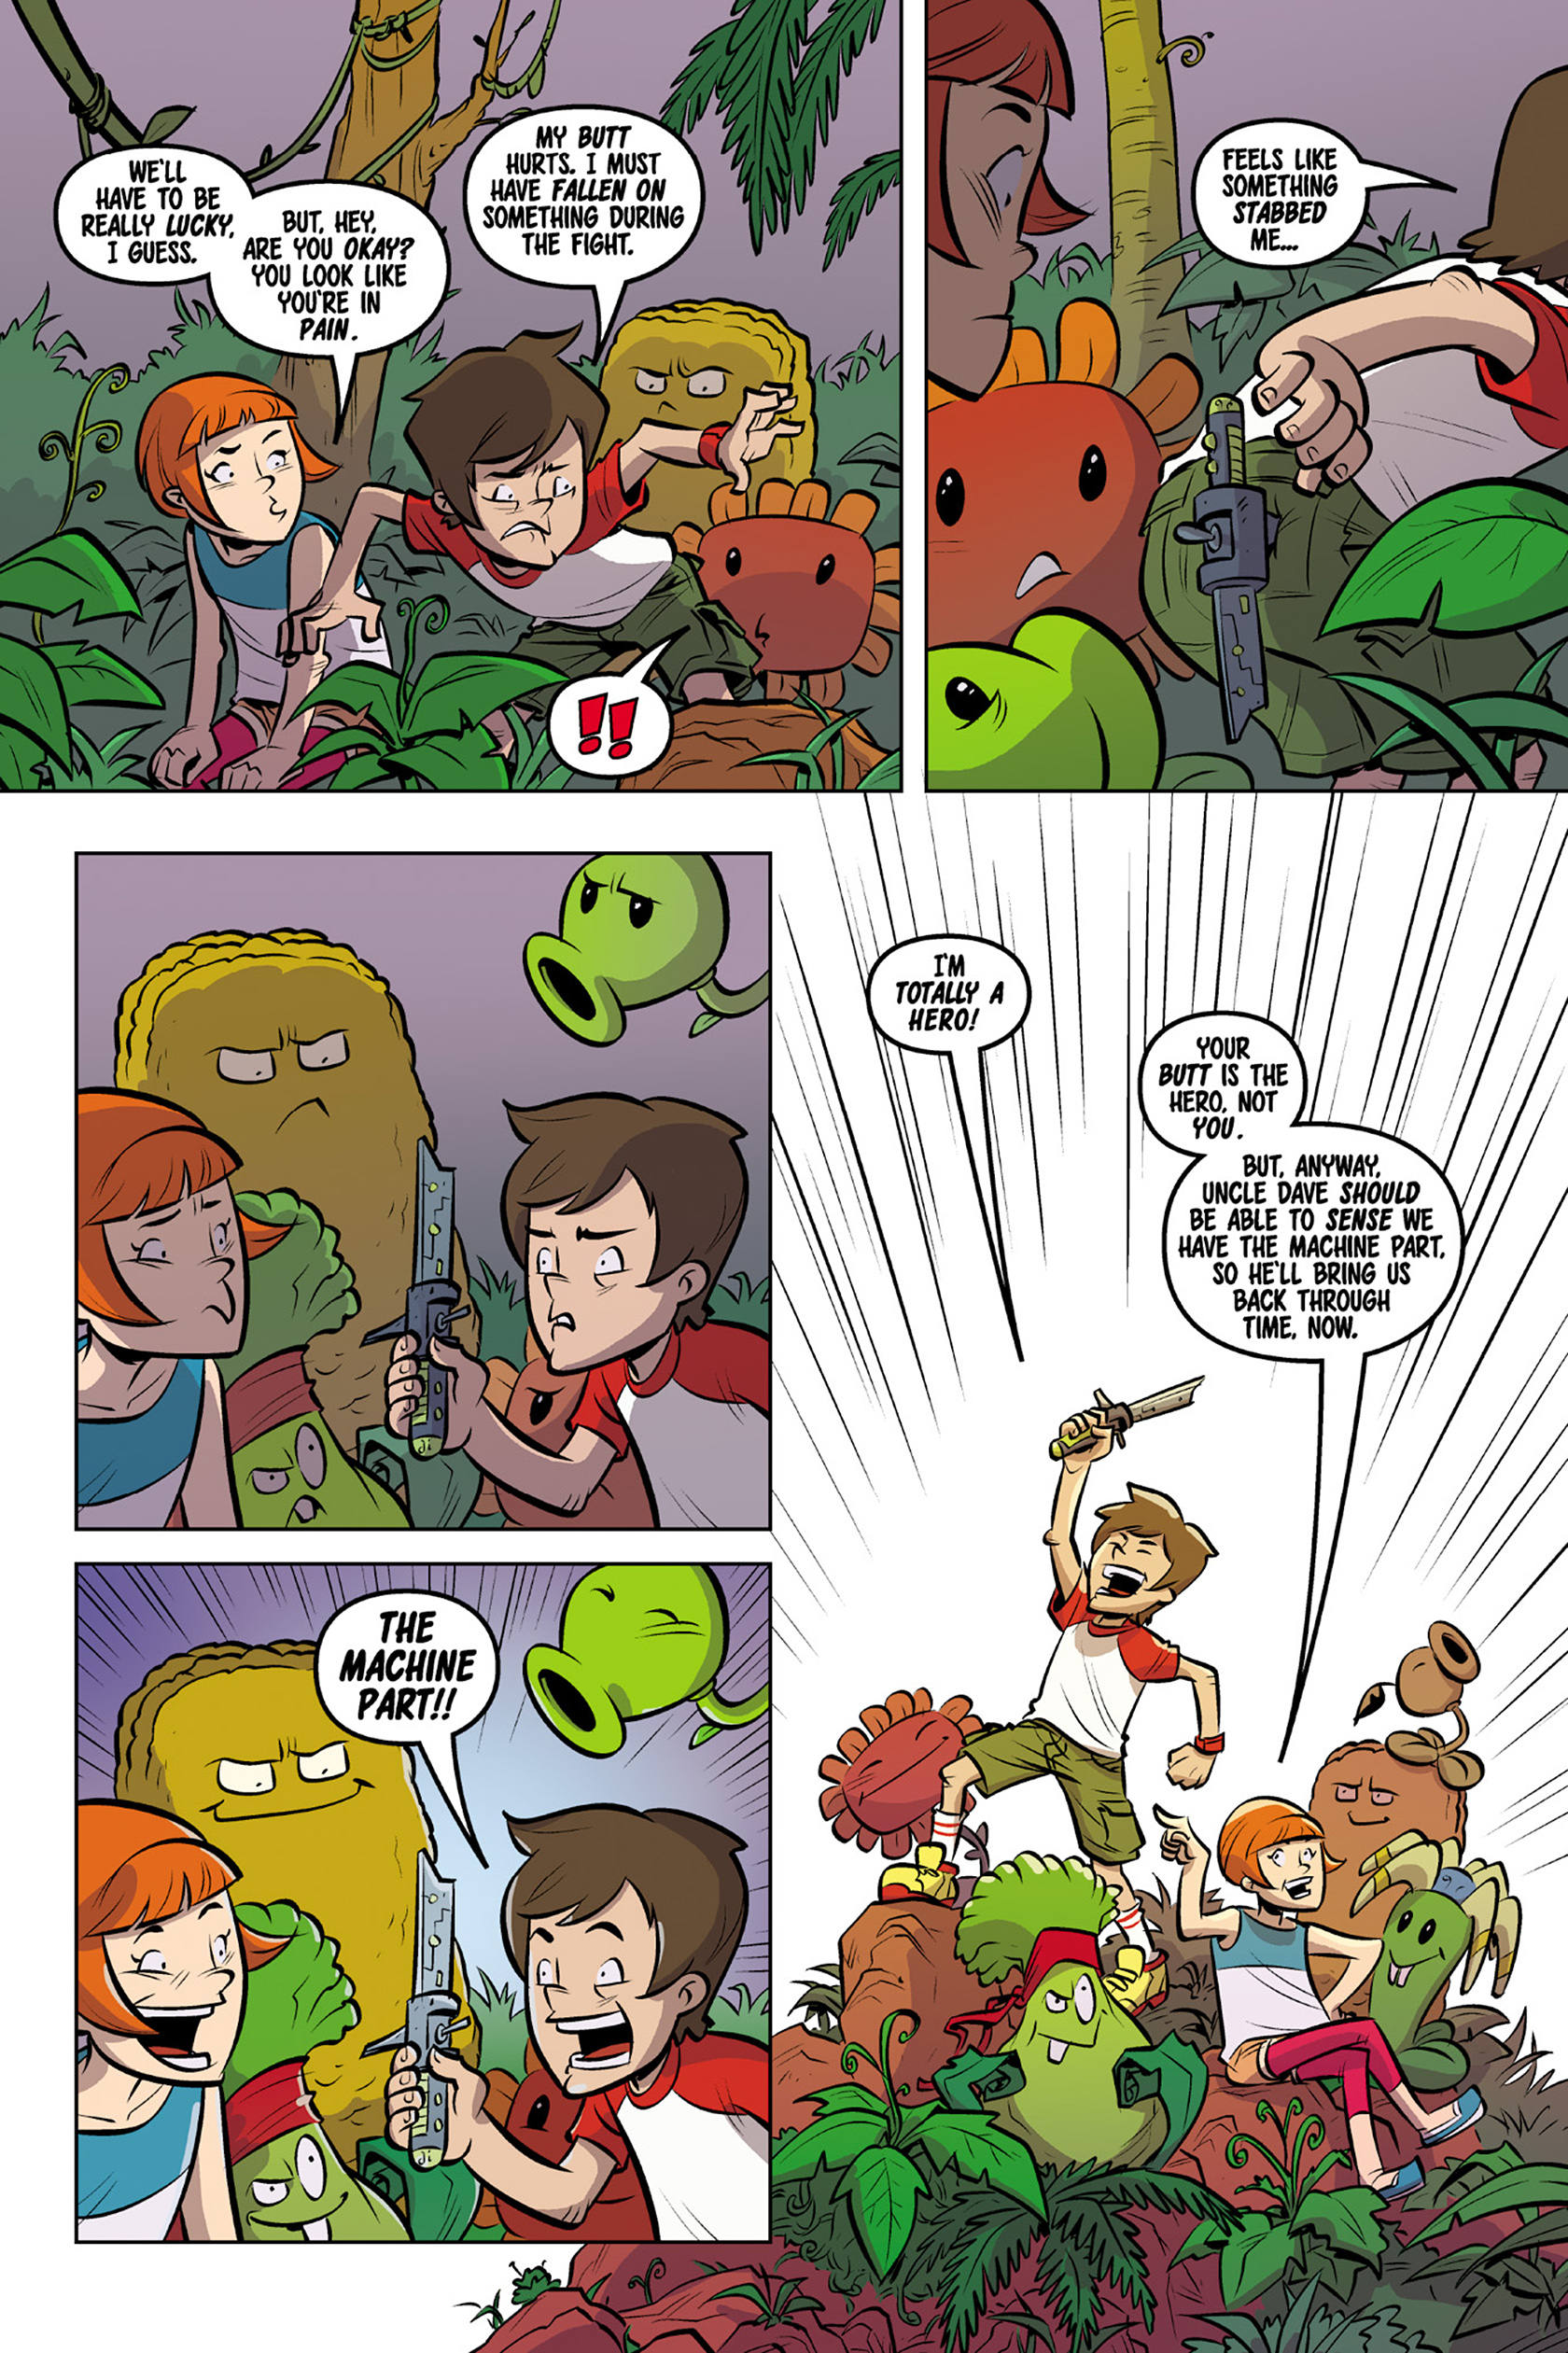 Plants Vs Zombies - Read Free Comics Online Plants Vs -1712